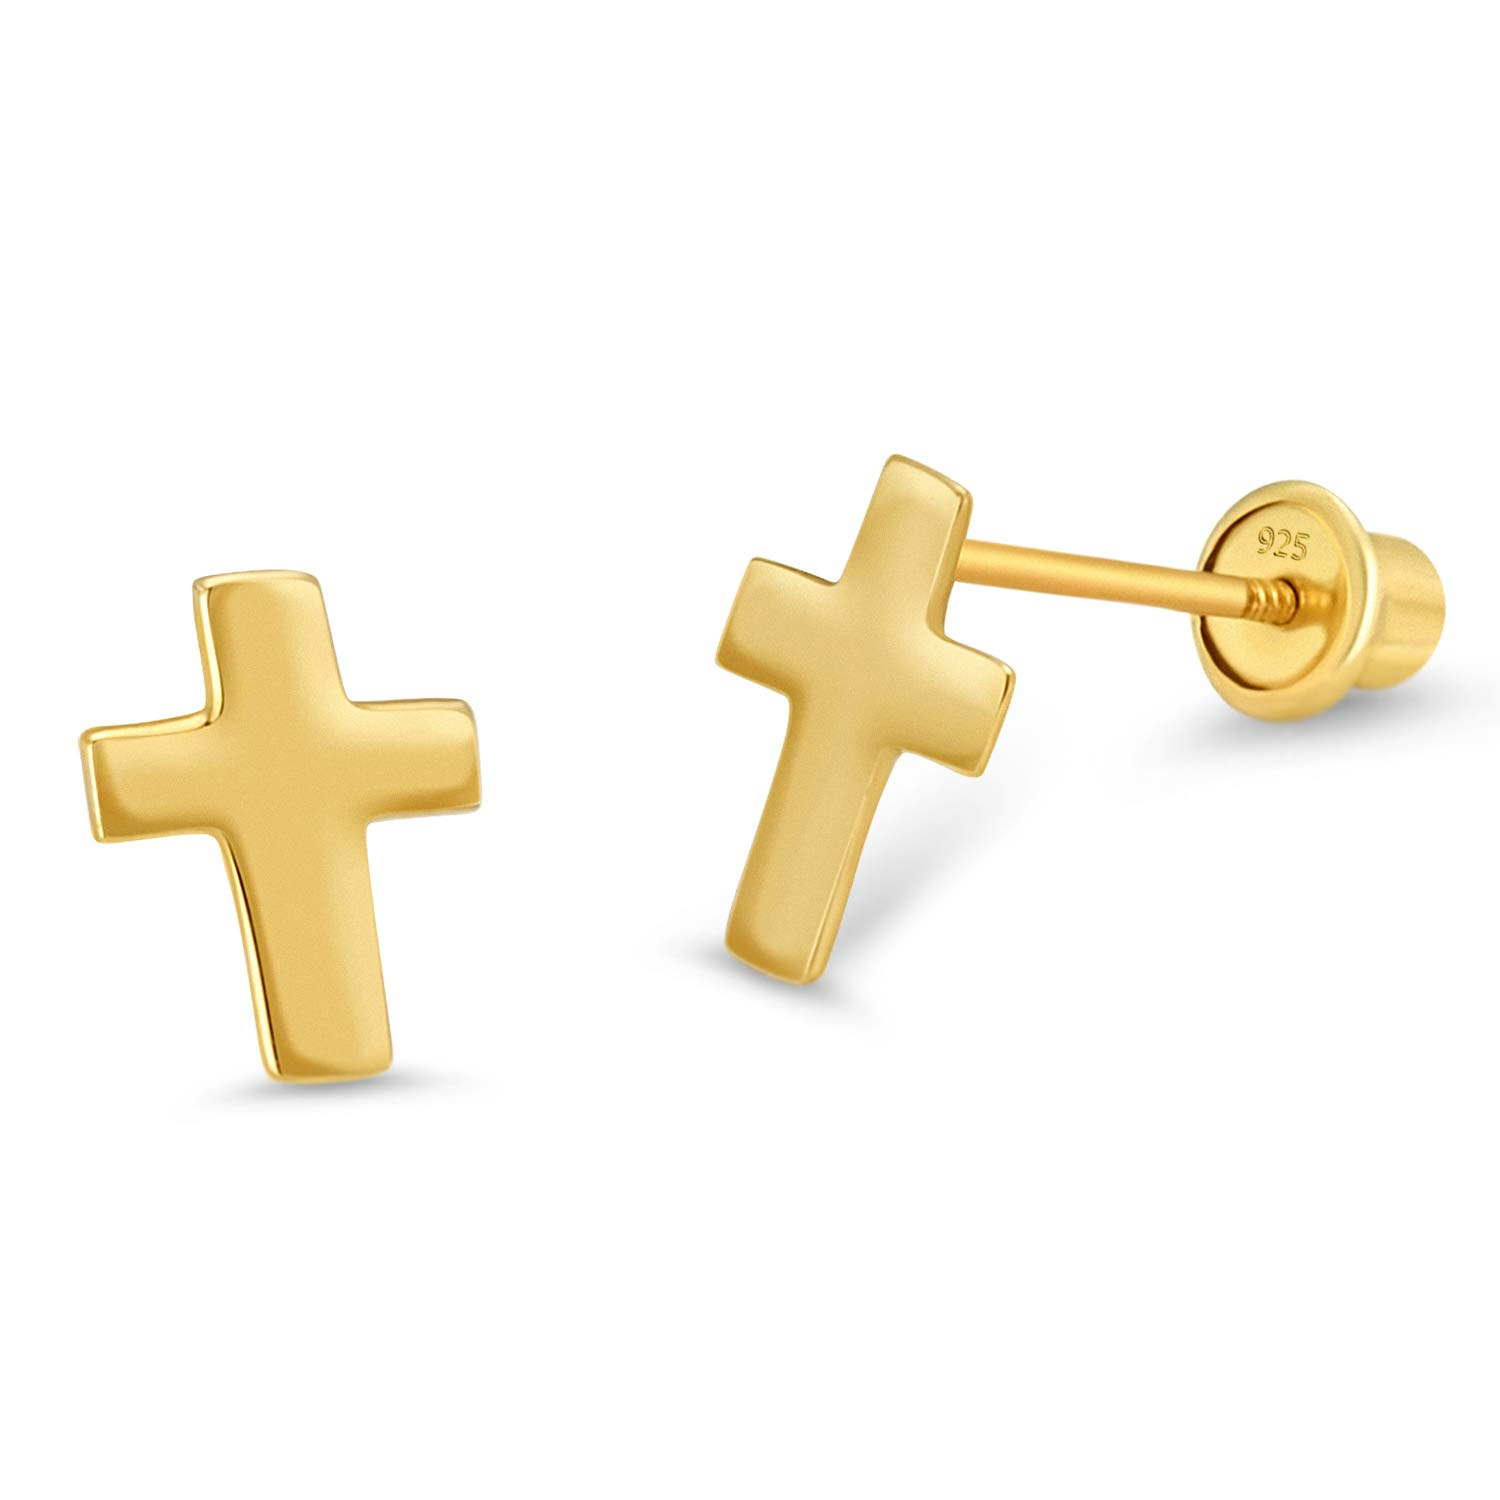 f1da79ae1 Amazon.com: 14k Gold Plated Brass Plain Cross Screwback Baby Girls Earrings  with Sterling Silver Post: Jewelry